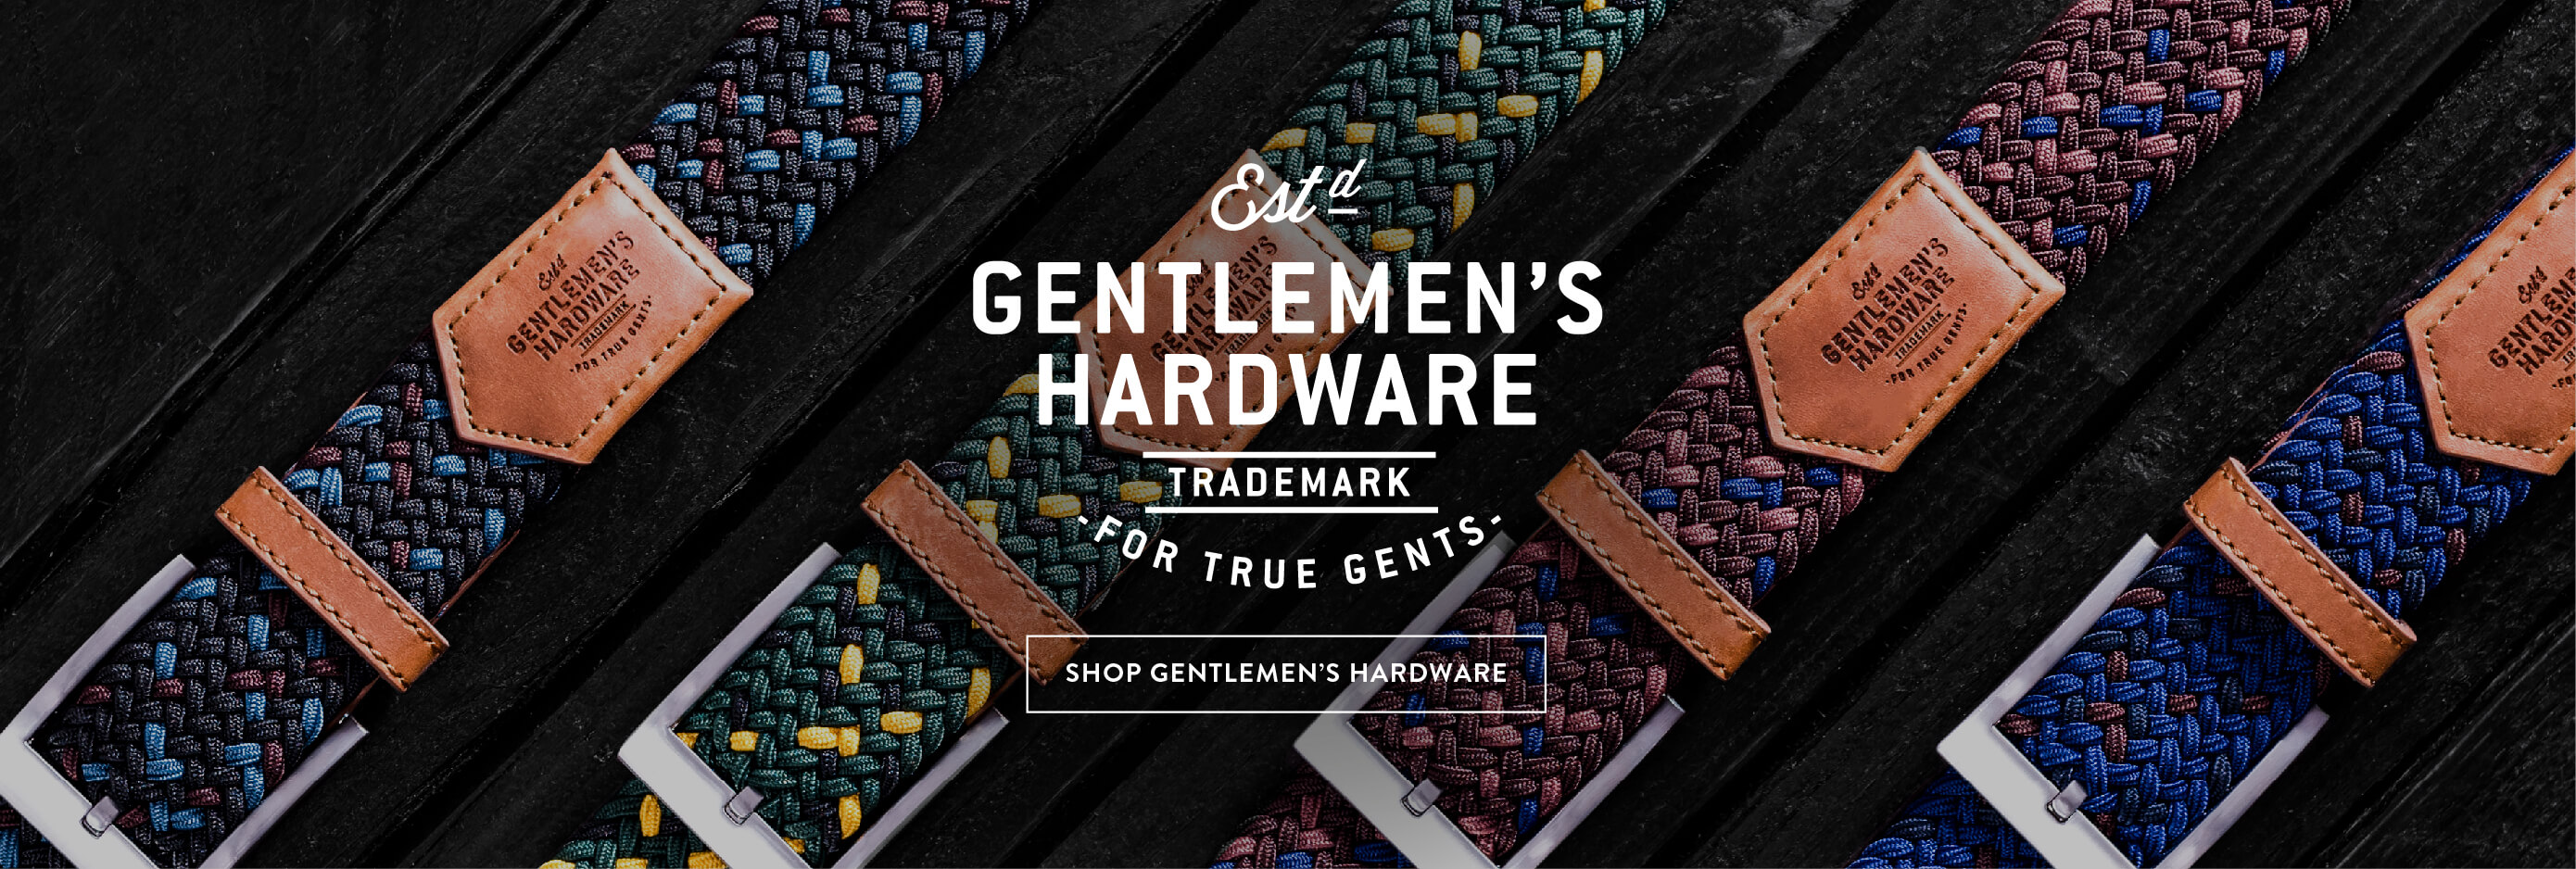 Shop Gentlemen's Hardware by Wild & Wolf